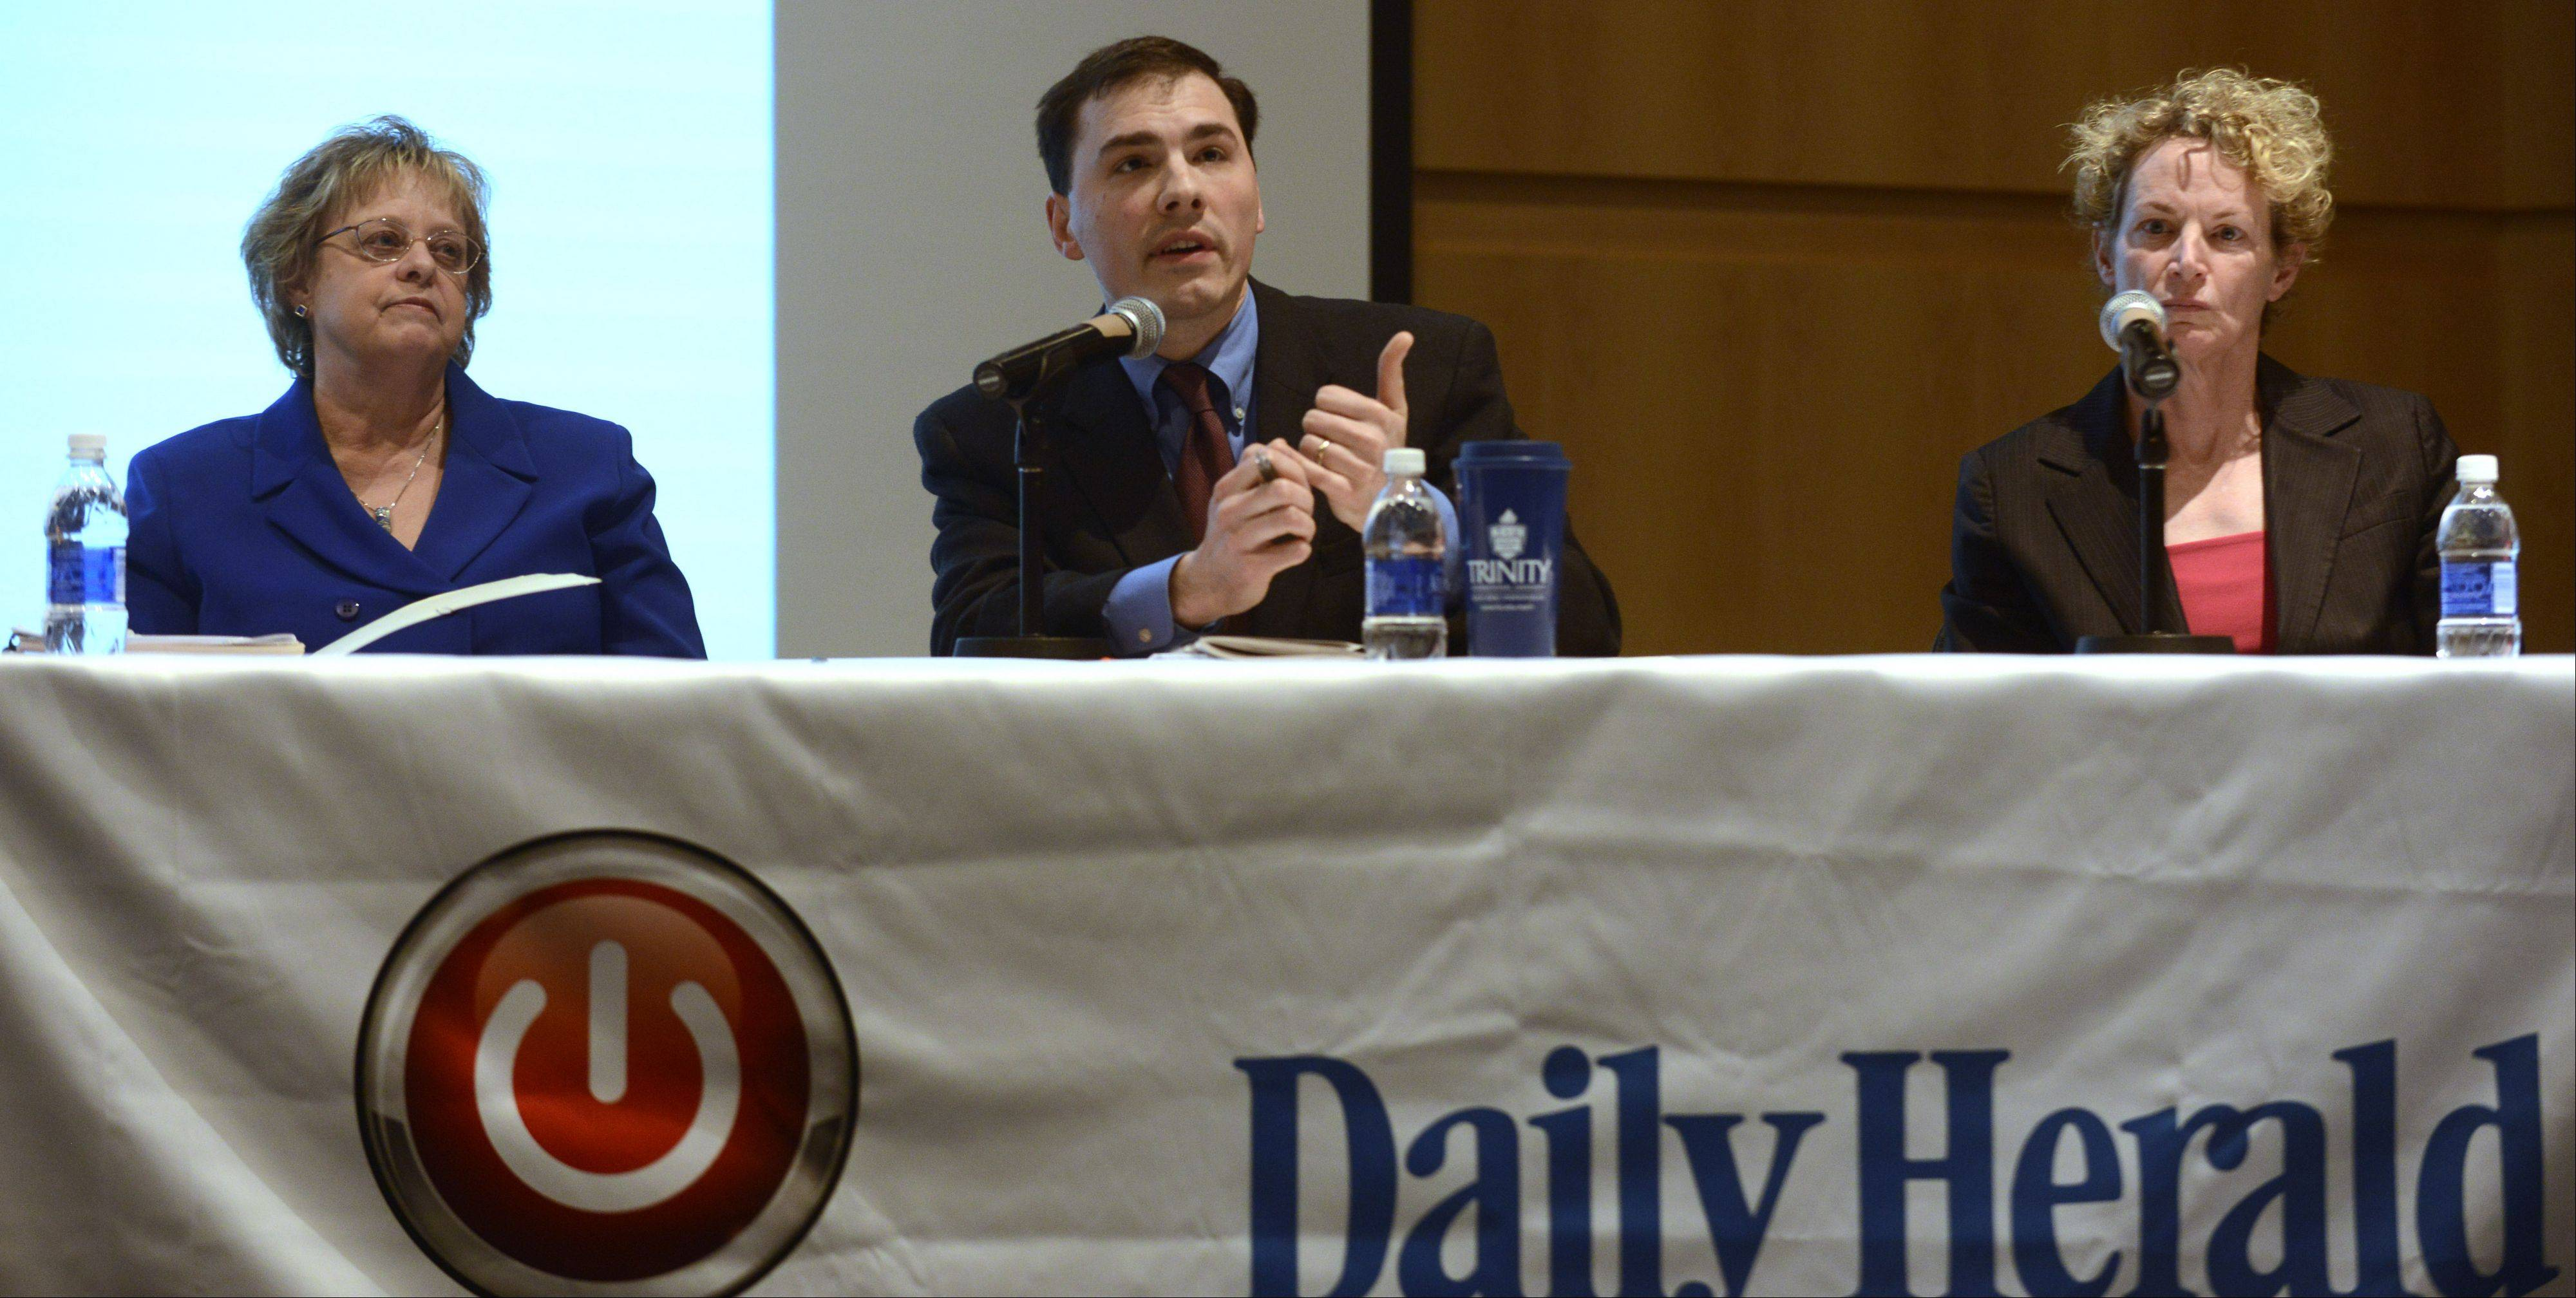 From left, Cinda Klickna, Illinois Education Association president, and state Reps. Tom Morrison and Elaine Nekritz participate in a pension reform forum, sponsored by the Daily Herald and Reboot Illinois, on Wednesday night at Harper College in Palatine.